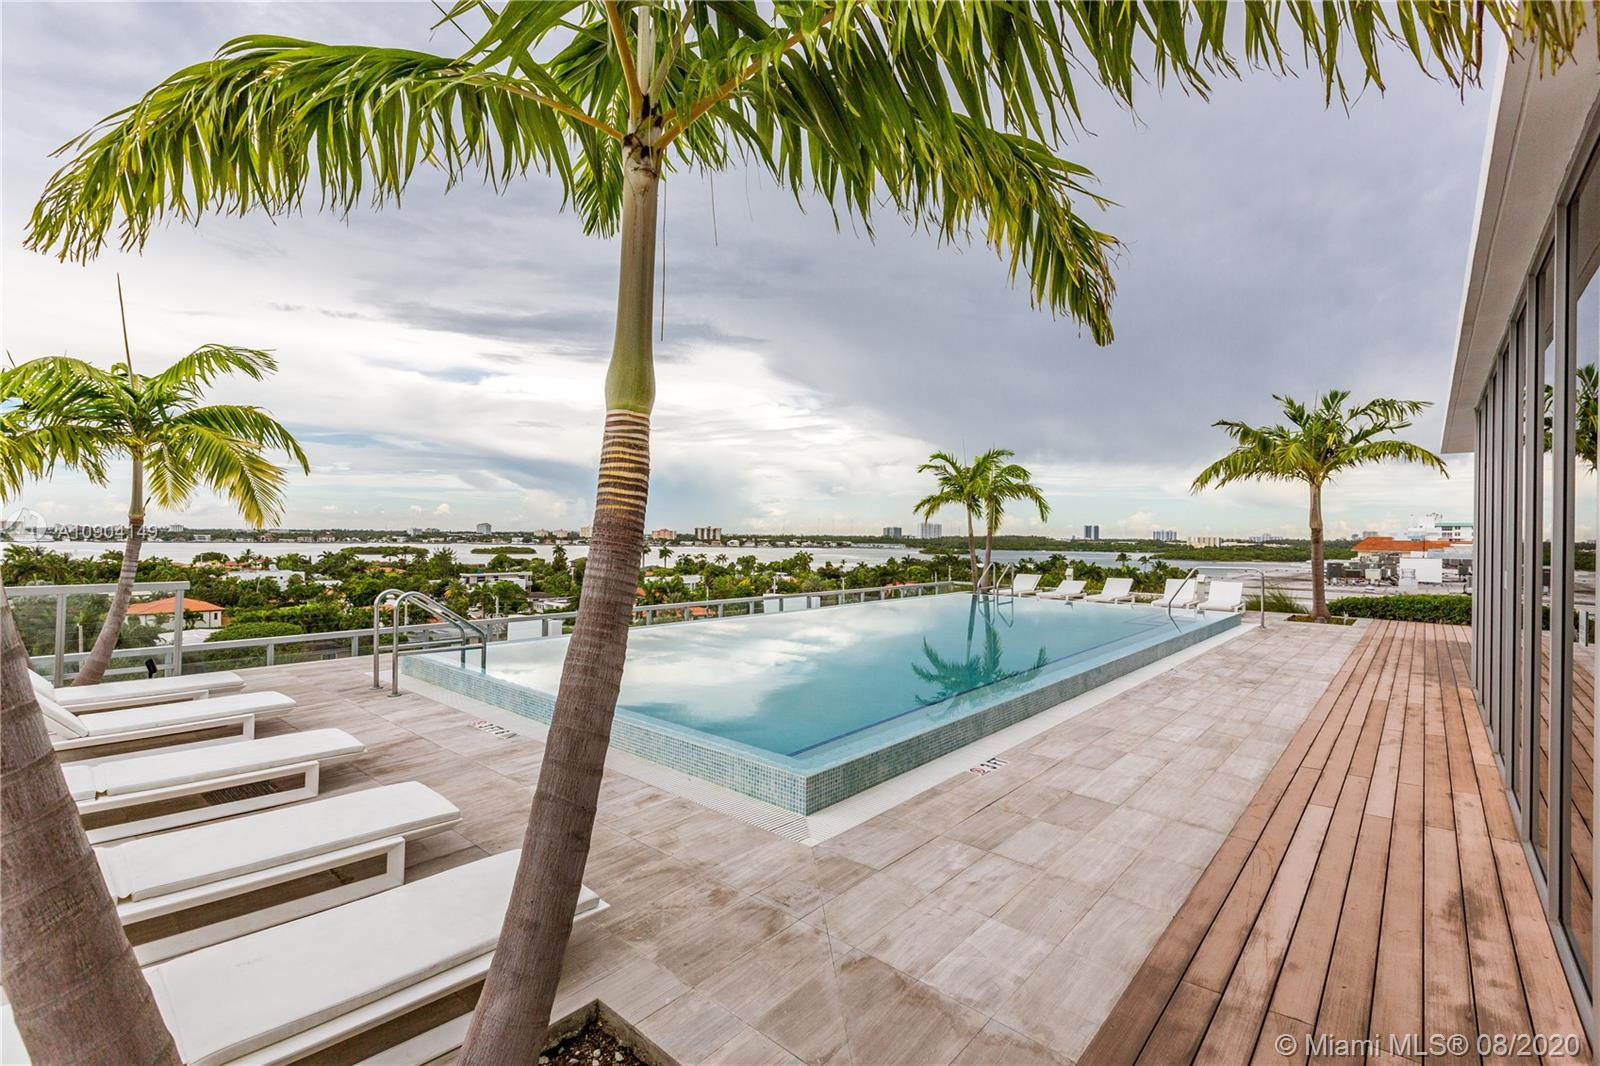 Great 2 bedrooms + Den (is enclosed by sliding doors and can be used as the third bedroom) / 3 full baths unit at Kai! The unit has a very functional floor plan! Custom closets have been put in the bedrooms along with blinds throughout the unit. Kai is a boutique building in Bay Harbor Islands with great amenities including a rooftop pool, gym, and party room. Come live at this unit and enjoy everything that Bay Harbor Islands has to offer!